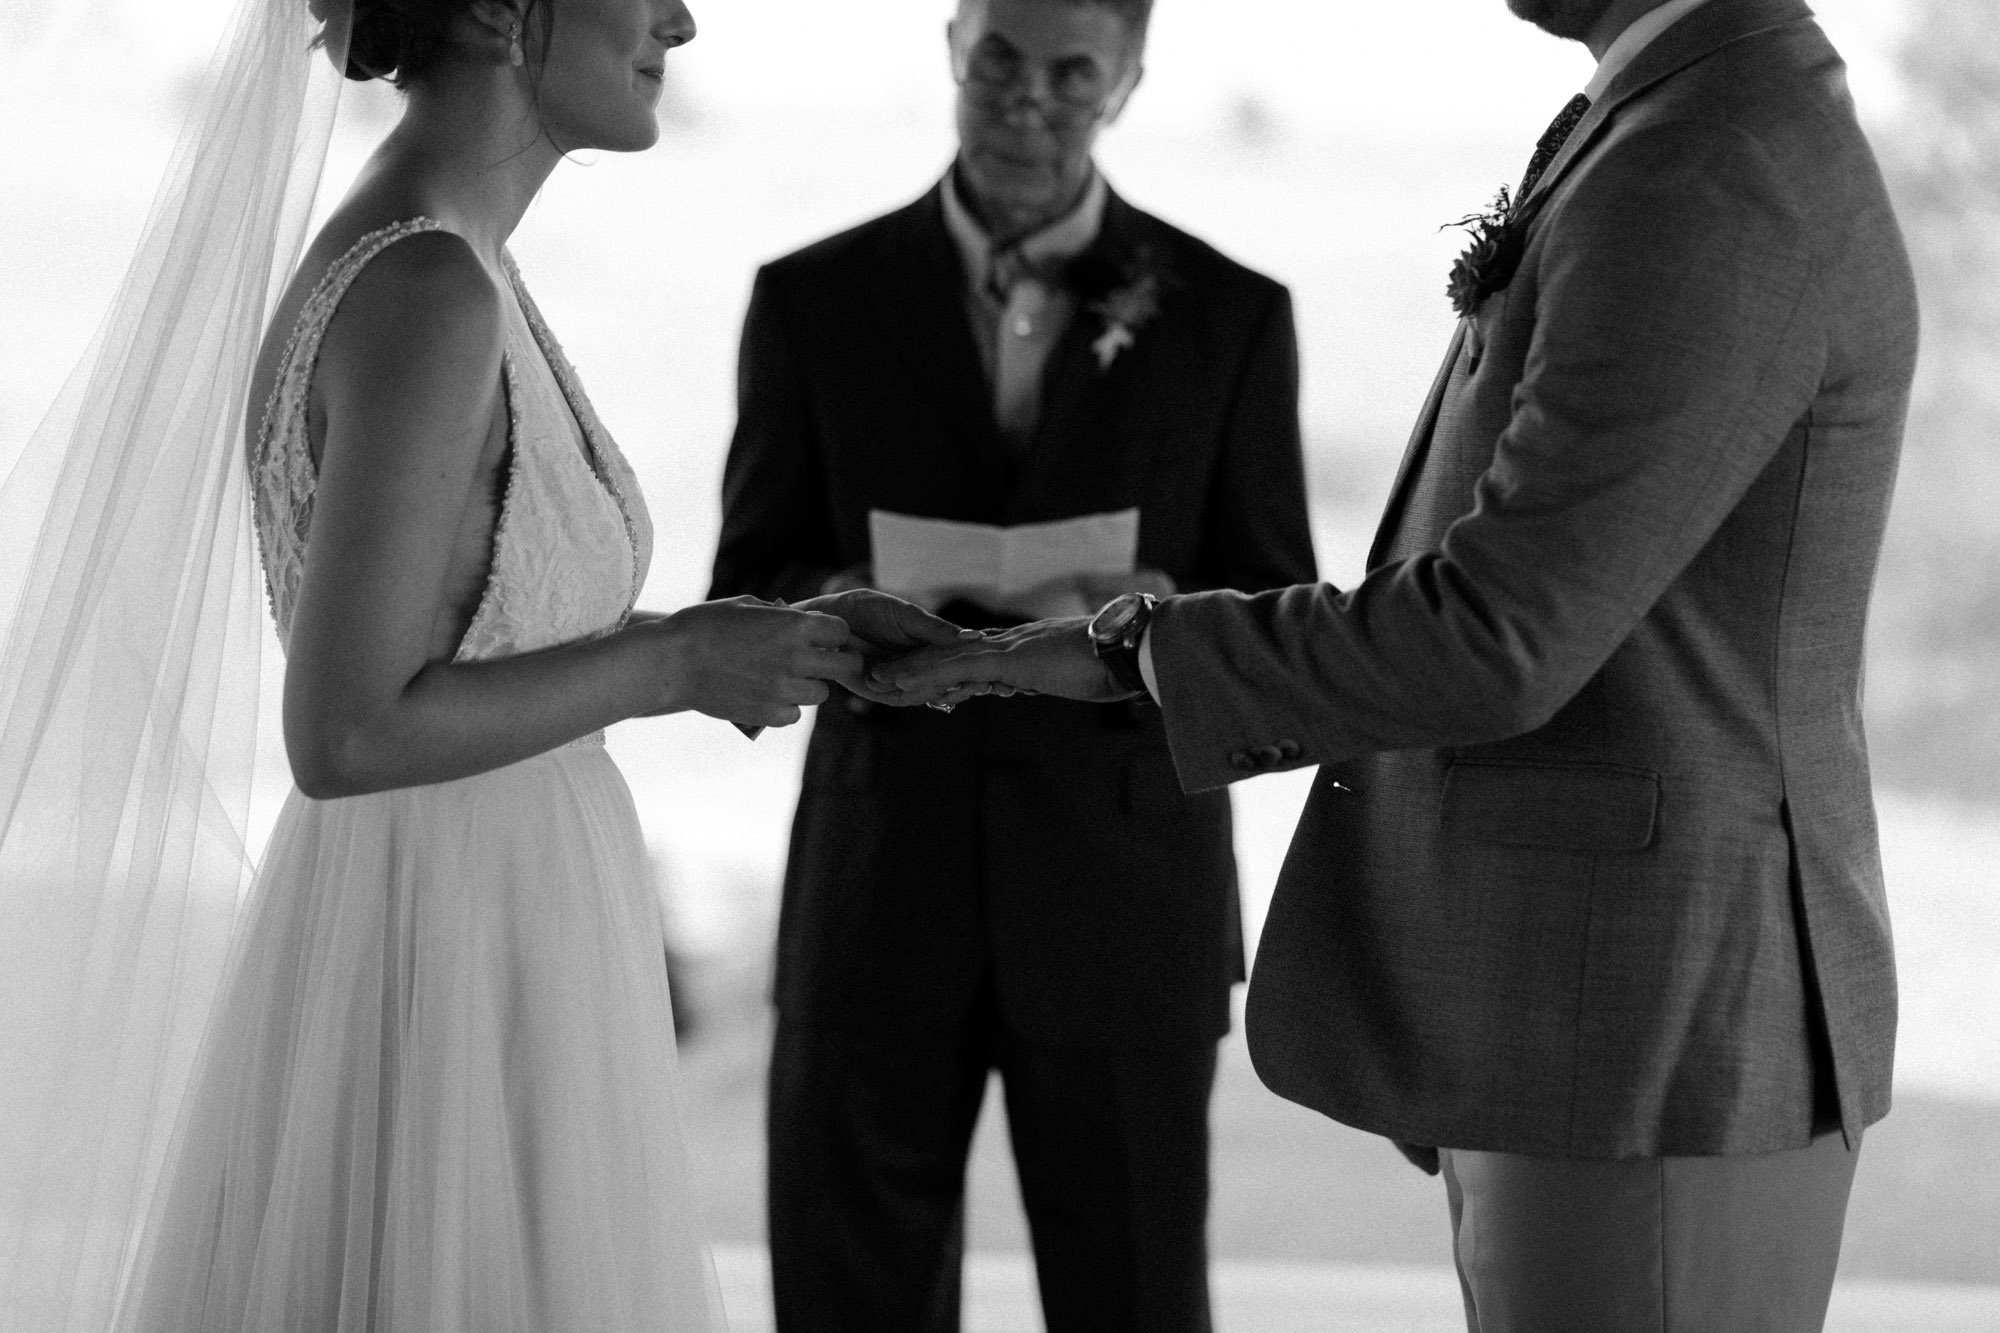 Black and white close up photo of bride and groom exchanging rings